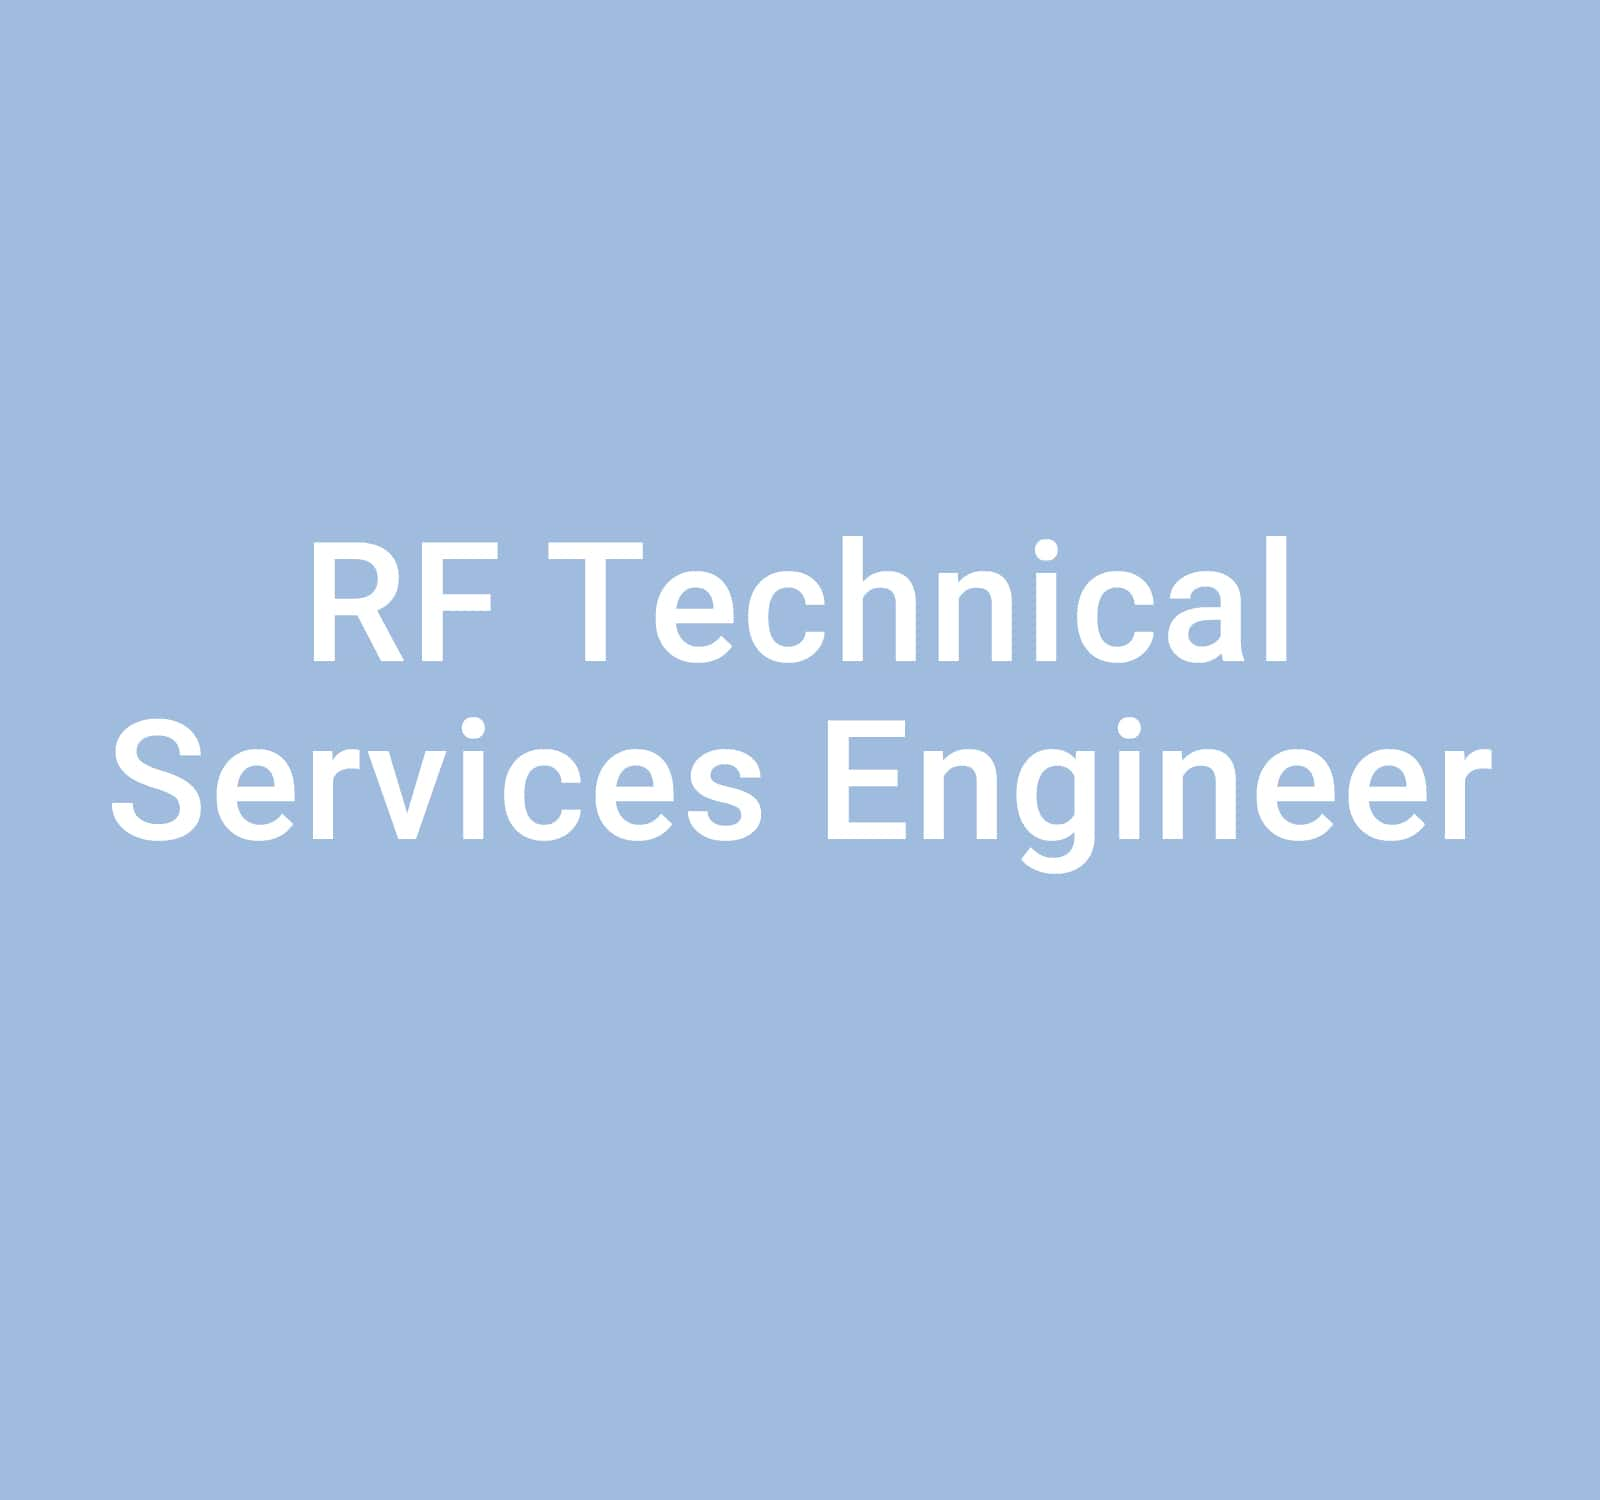 RF Technical Services Engineer: